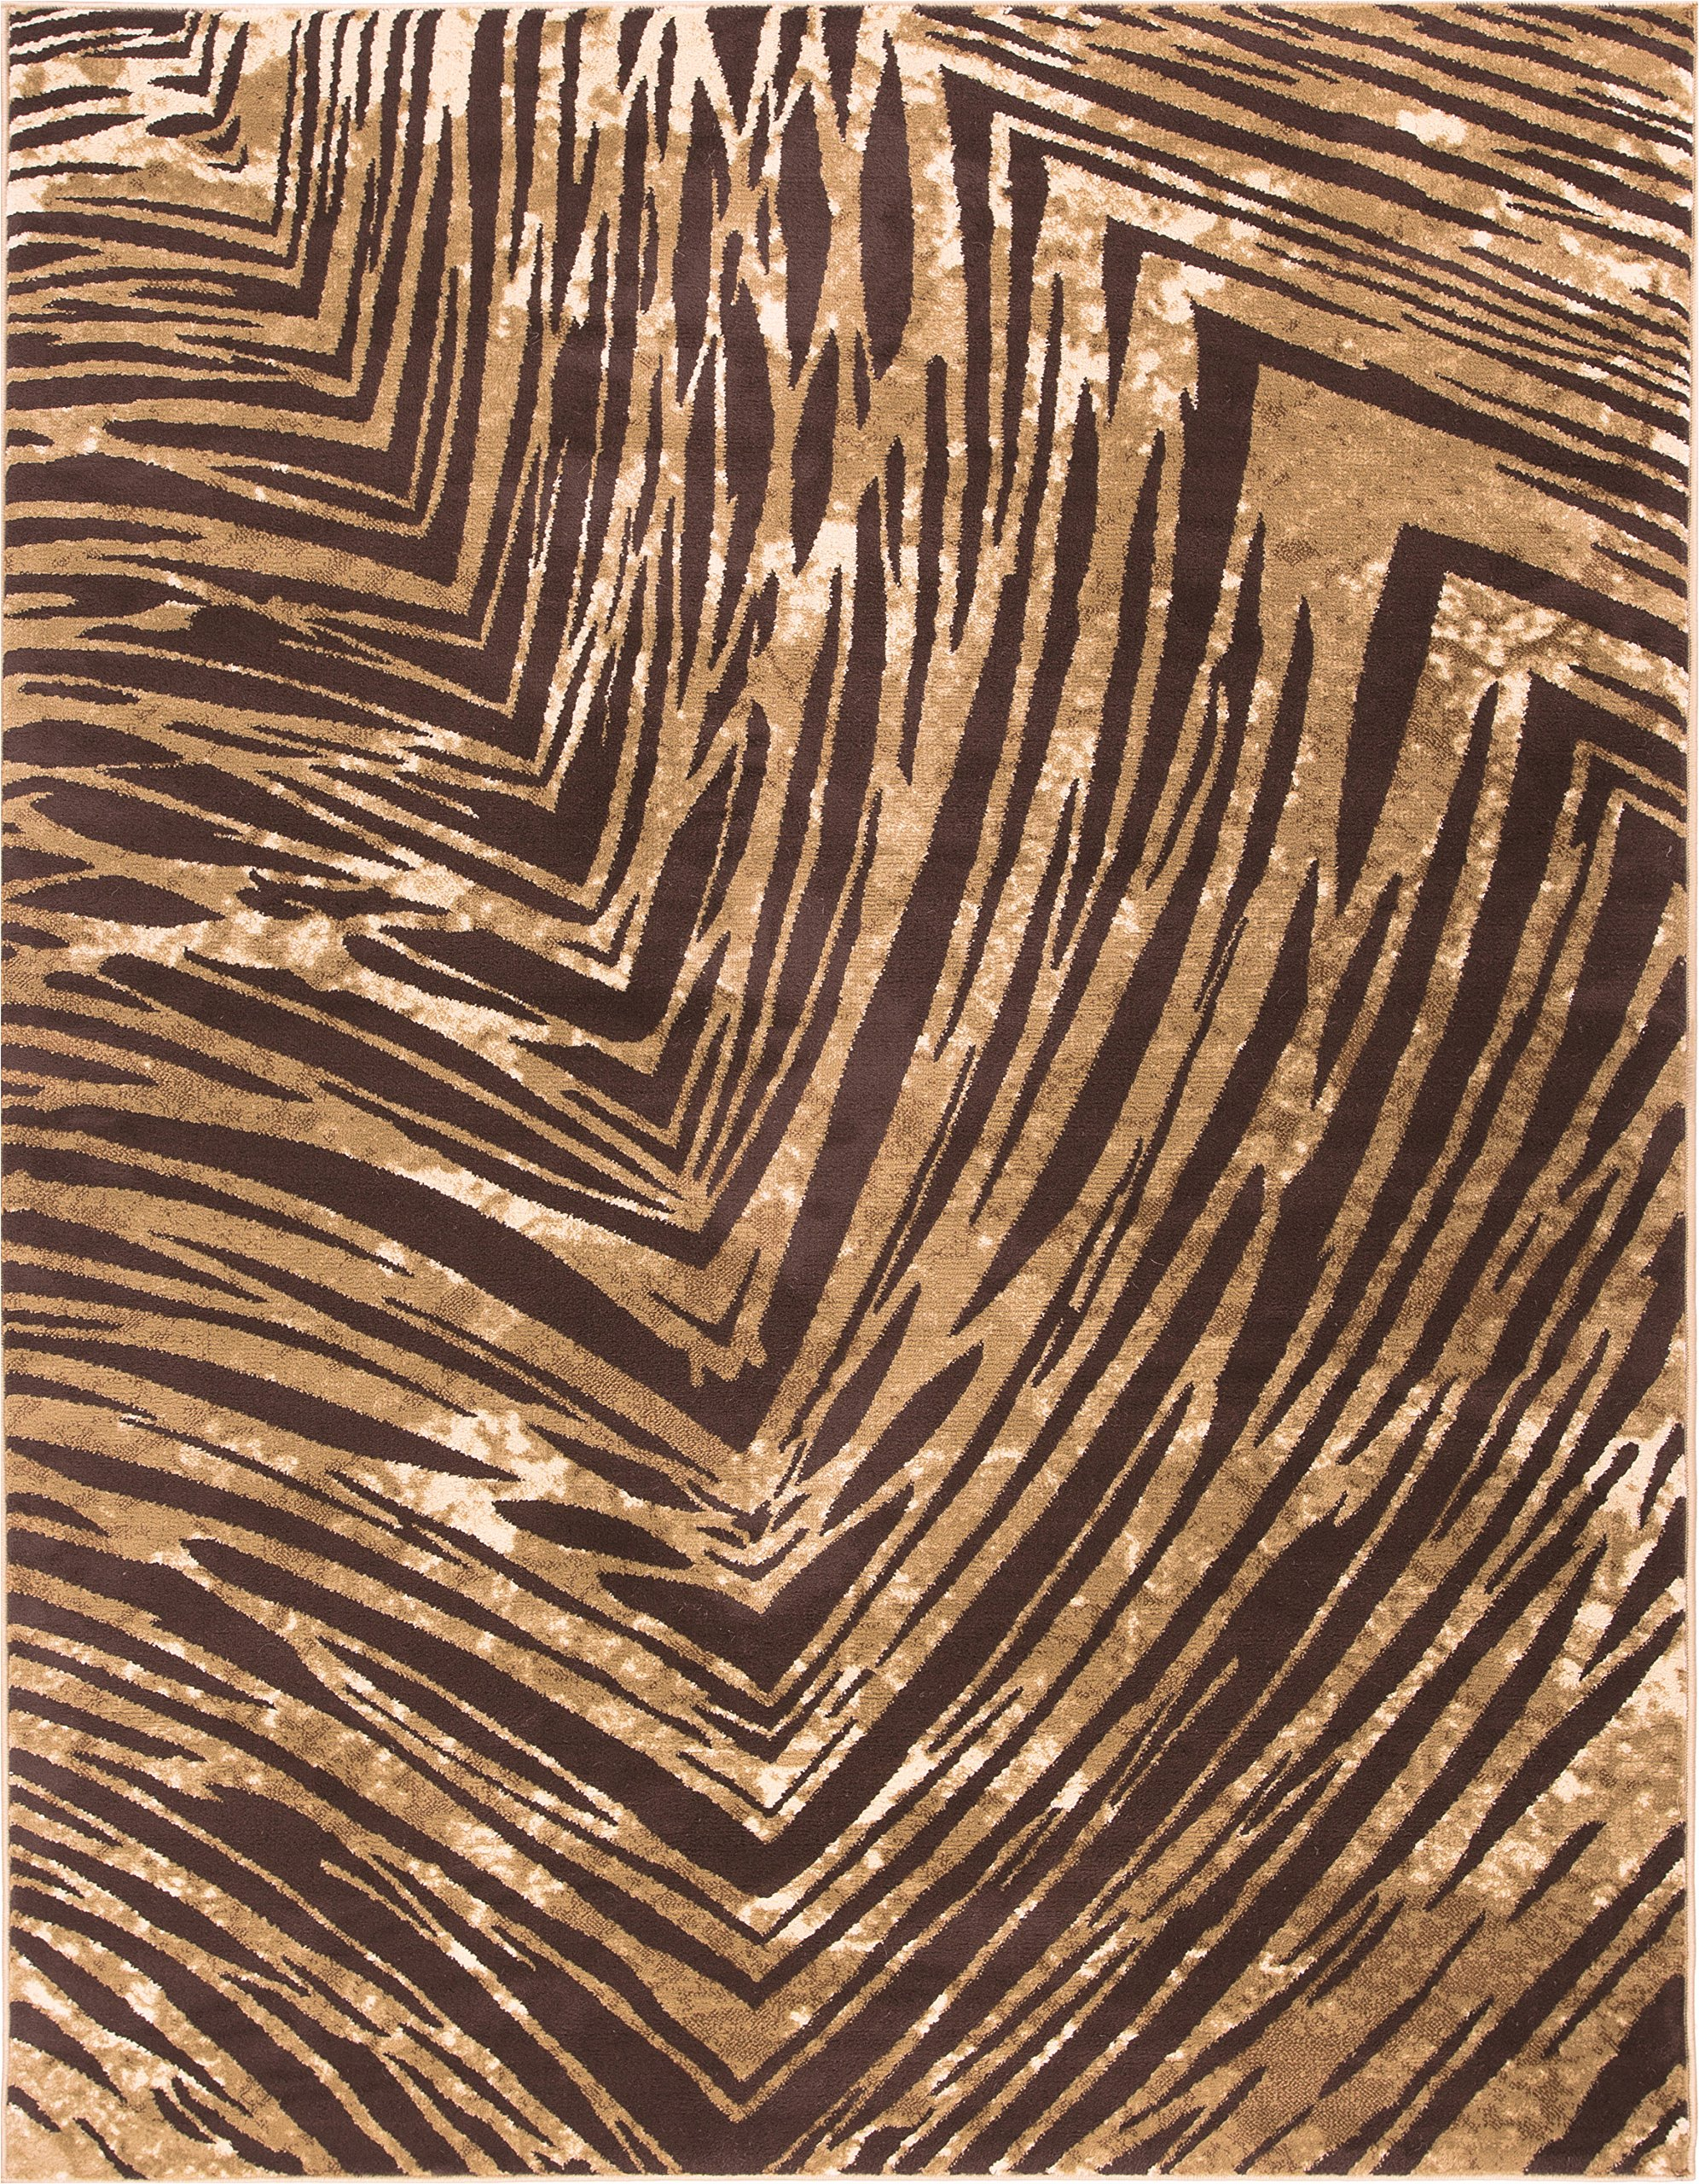 Eventful Spirit Brown & Beige Animal Print Area Rug Abstract Brushstrokes Zebra Stripes